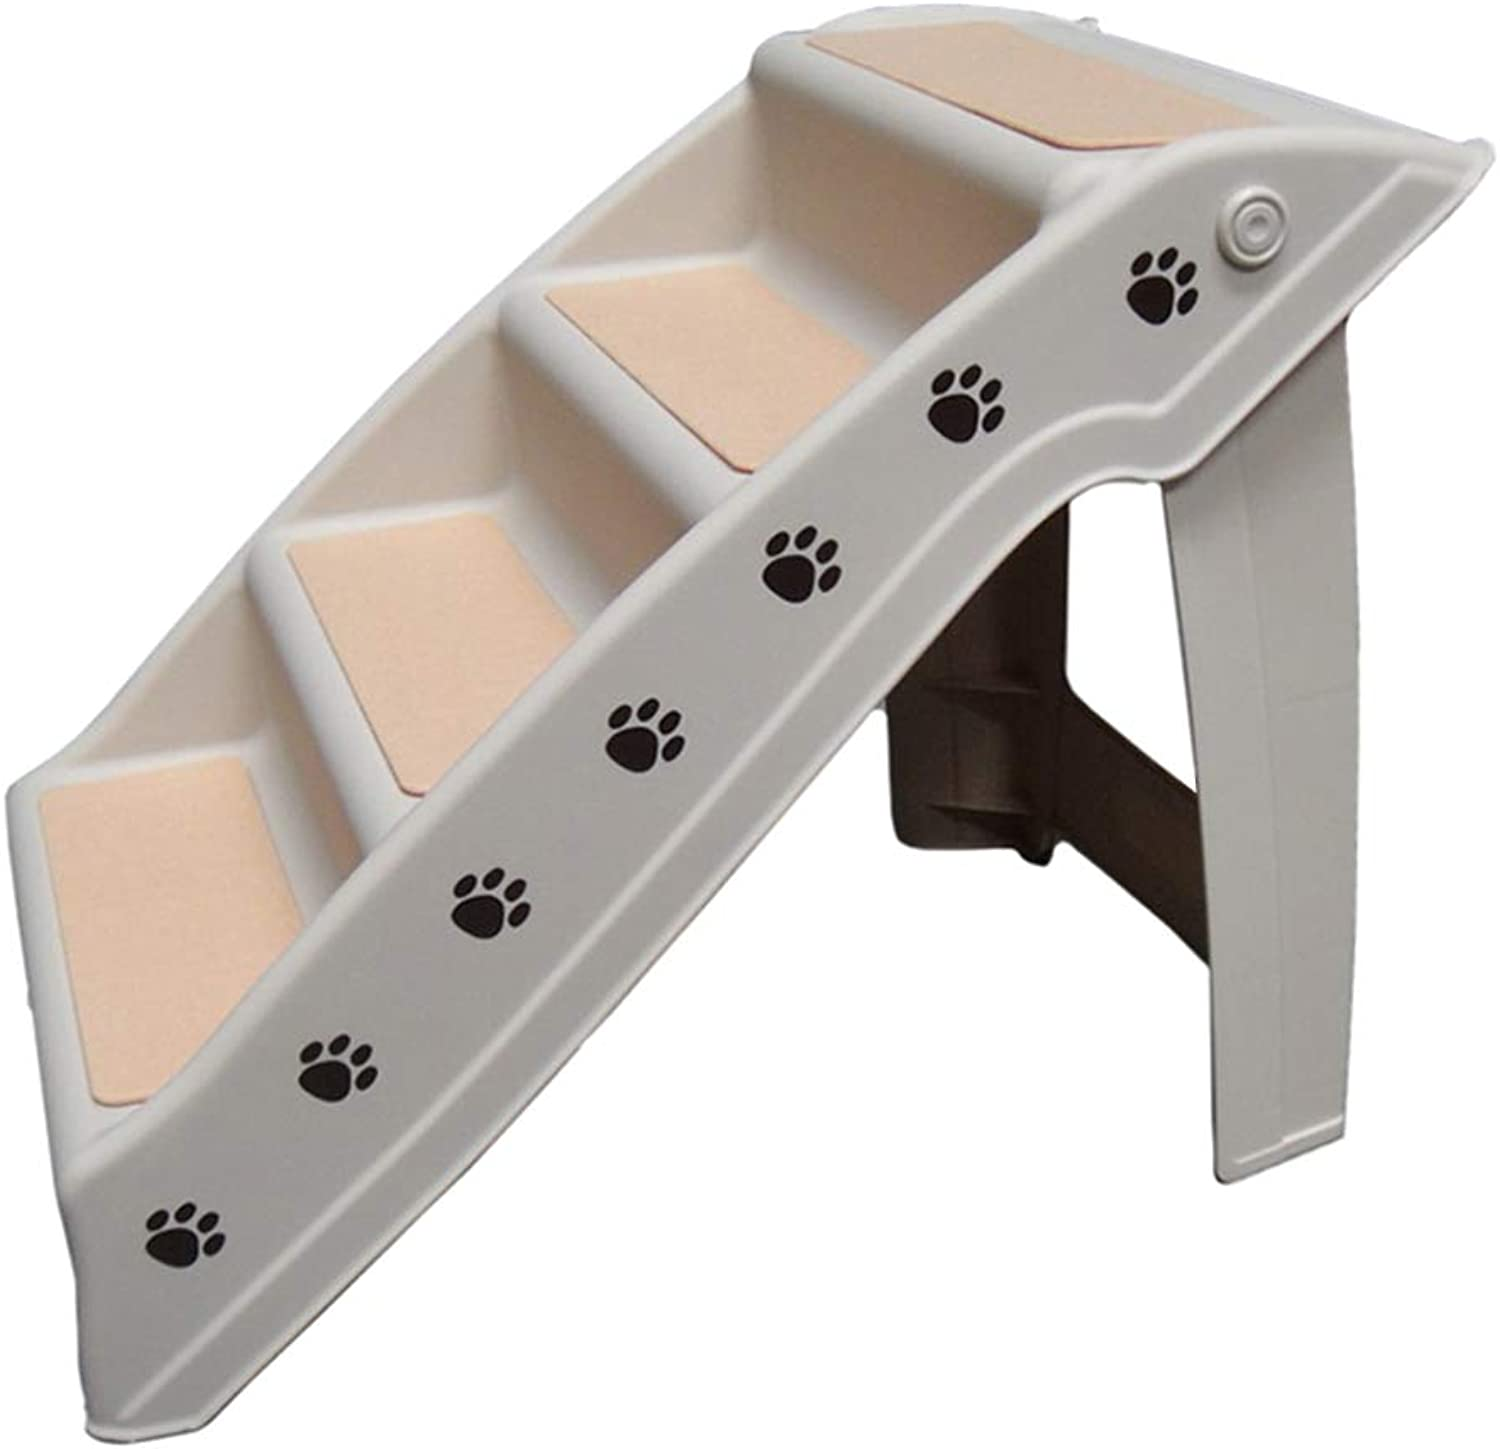 LXLA  Folding Plastic Pet Stairs, 4Step Ladder for Small and Medium Dogs Cats, Lightweight Portable, 62 × 38.5 × 48.5cm